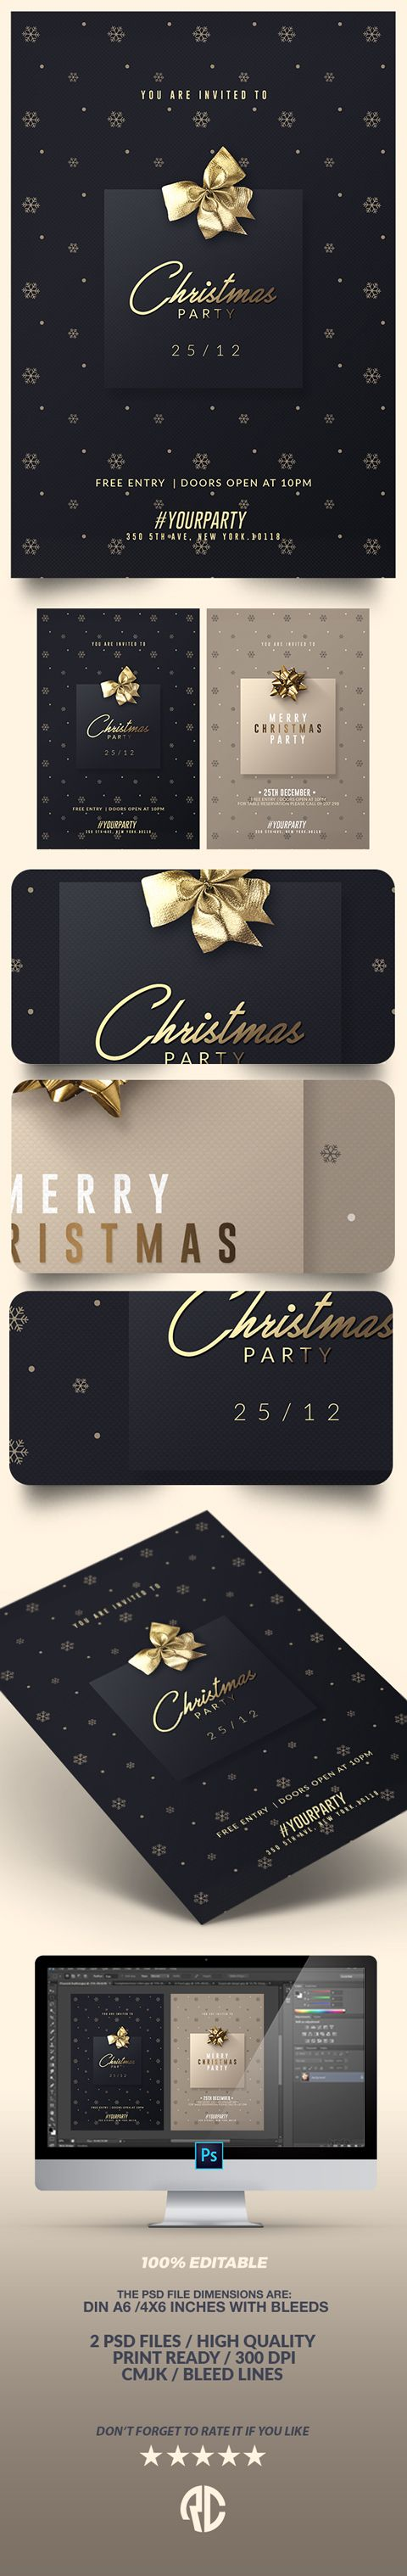 Awesome ! 2 Classy Christmas | Psd Invitations - #invitation #christmas #style #fashion #cards #template #party #creativemarket